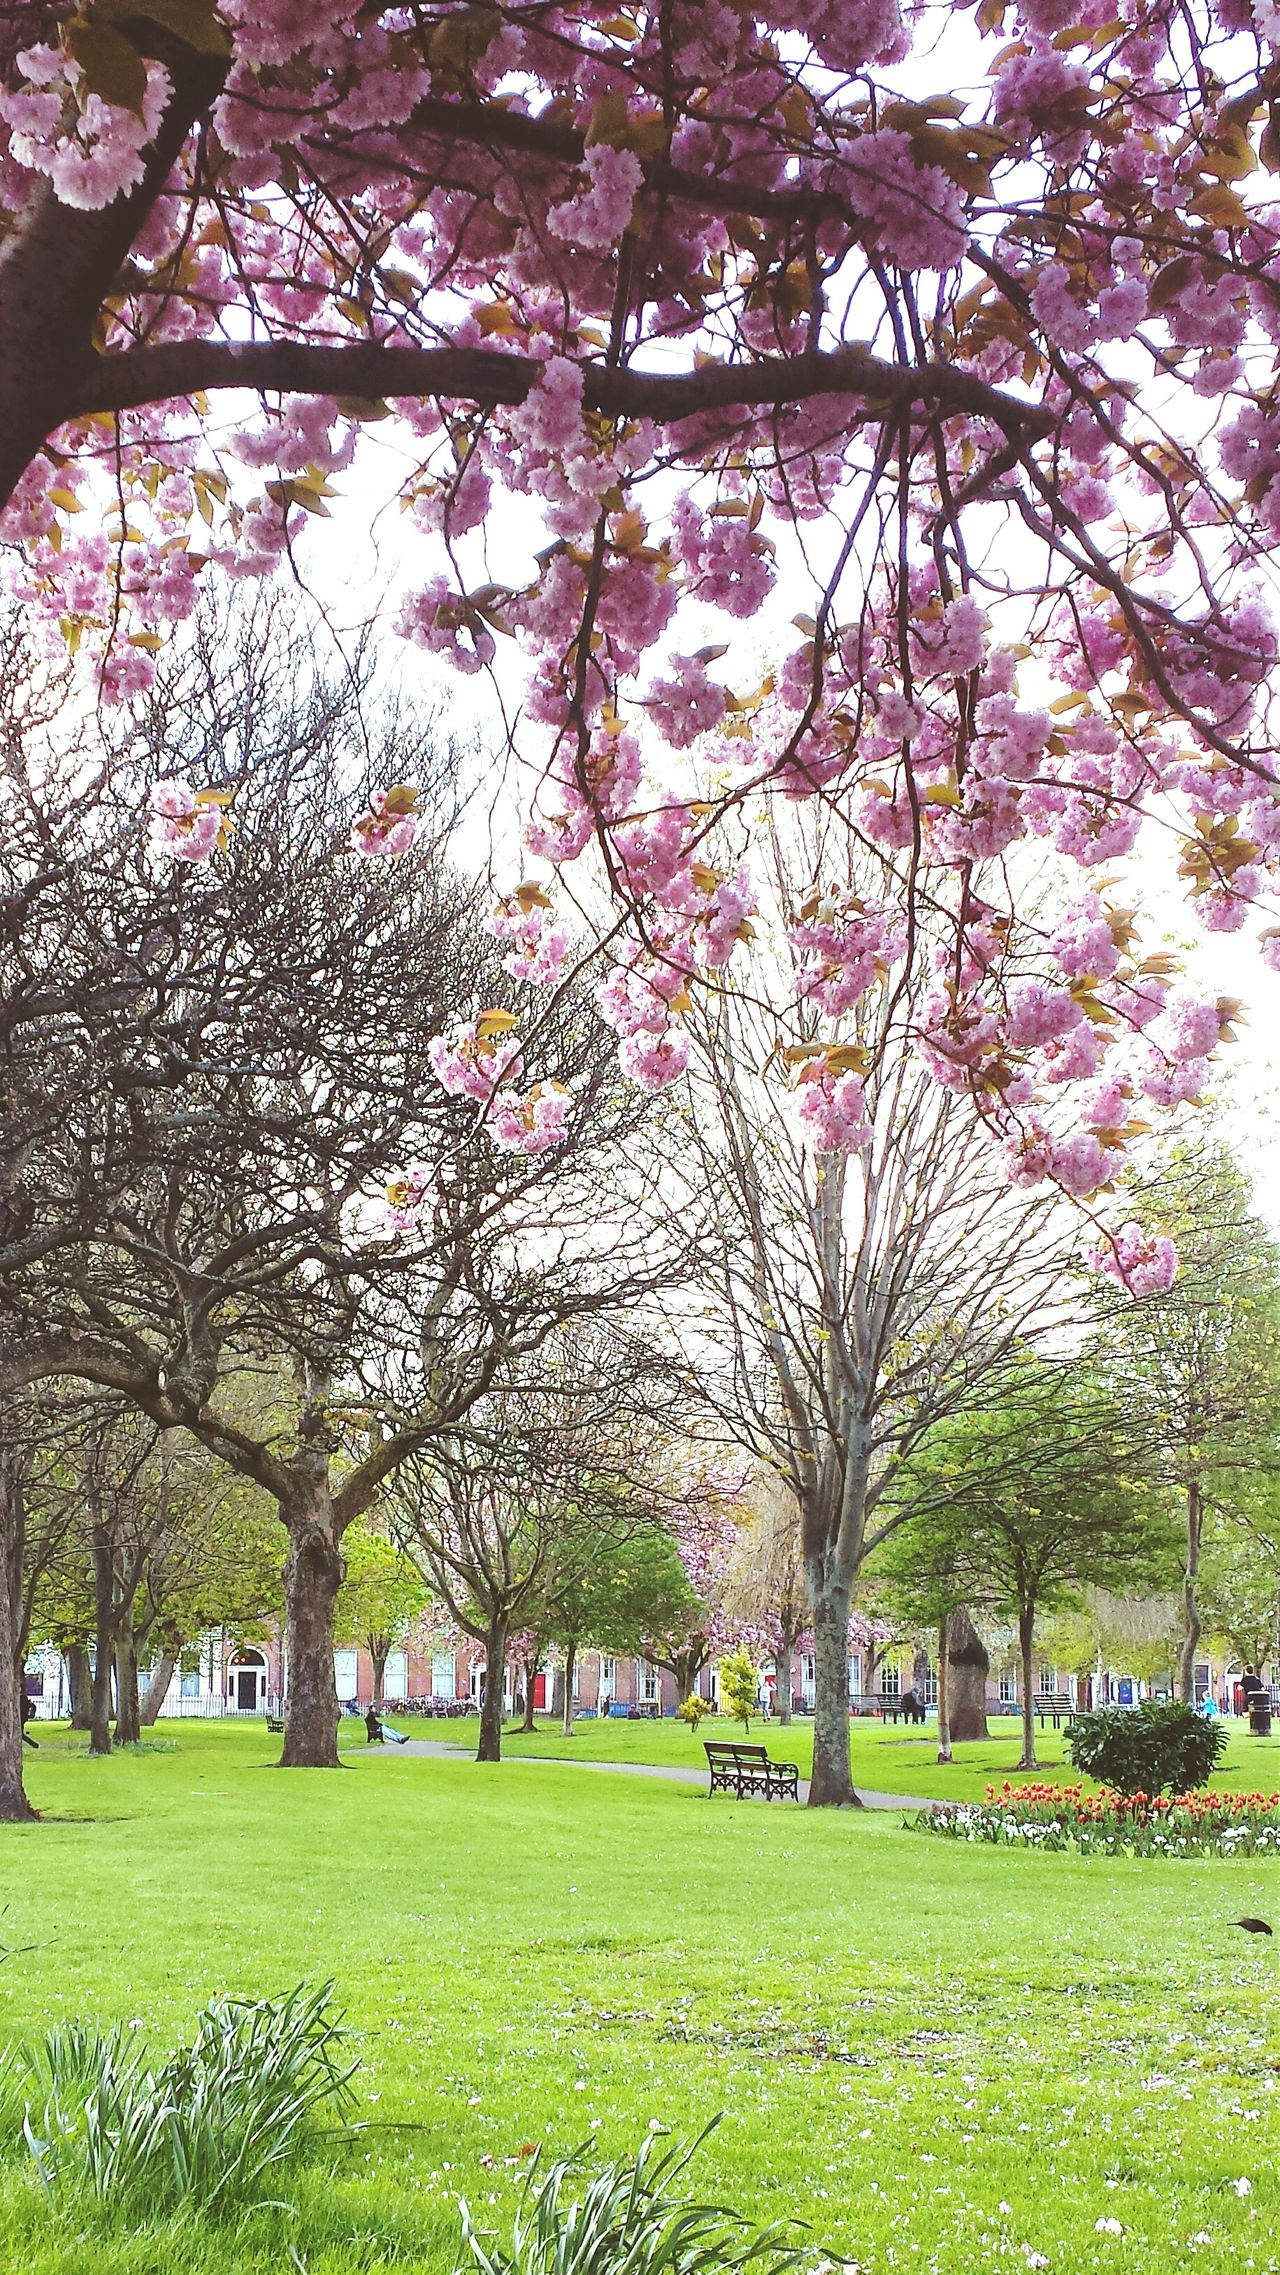 Loving beautiful Dublin in spring. Nature Springhassprung